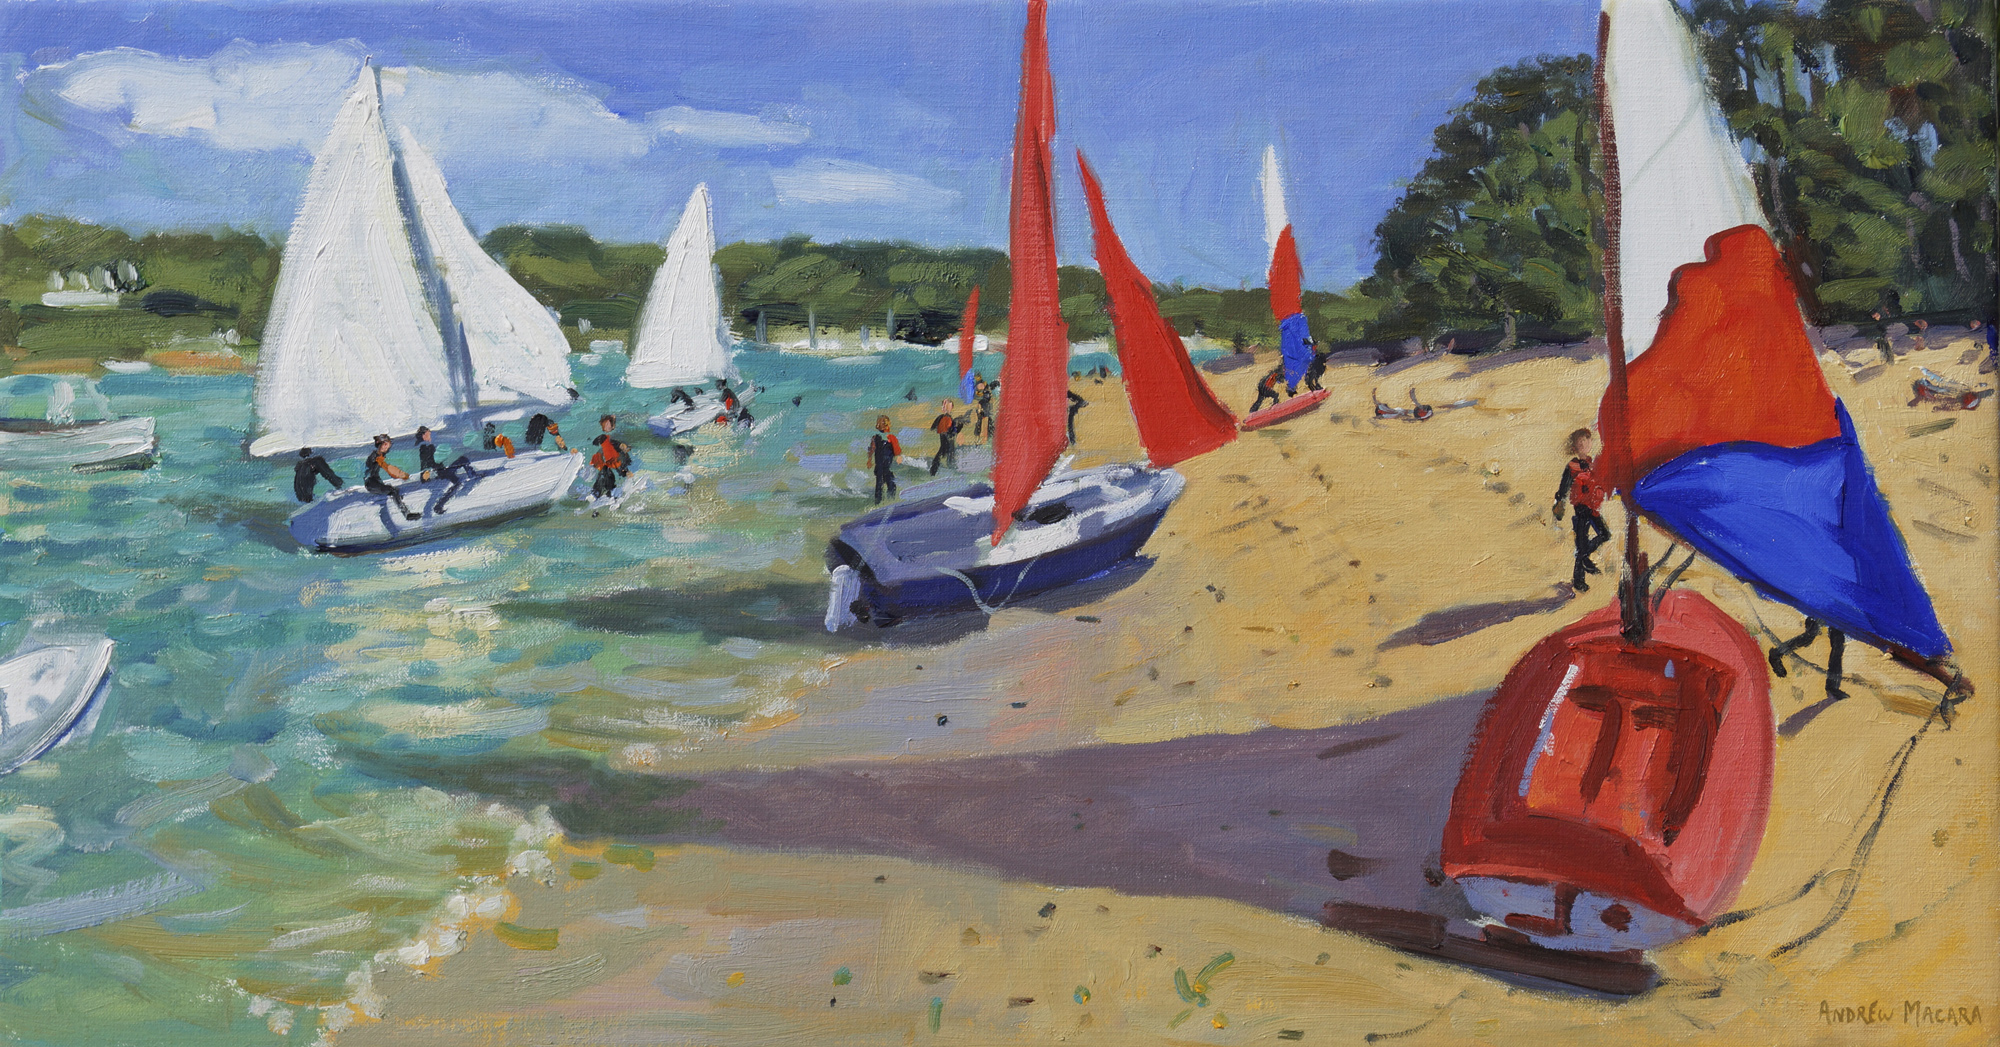 "Andrew Macara, Sailing practise , Salcombe, 2013, Oil on Canvas, 16 x 30"", £2,750"